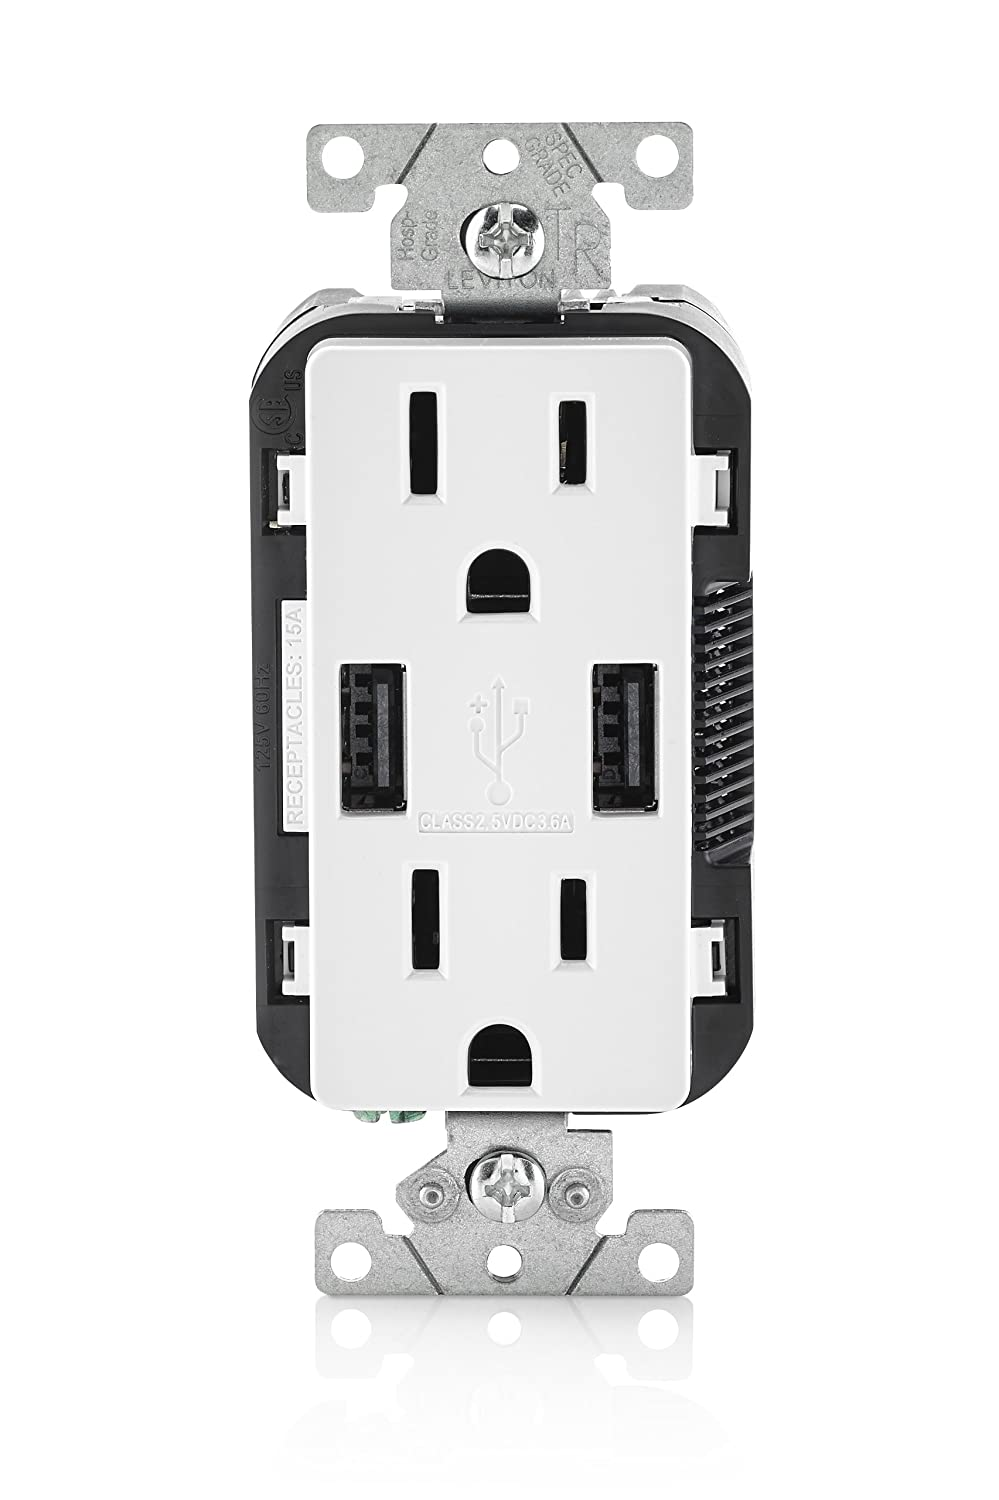 Leviton T5632 W 15 Amp Usb Charger Tamper Resistant Duplex Single Plex Receptacle Wiring Diagram White